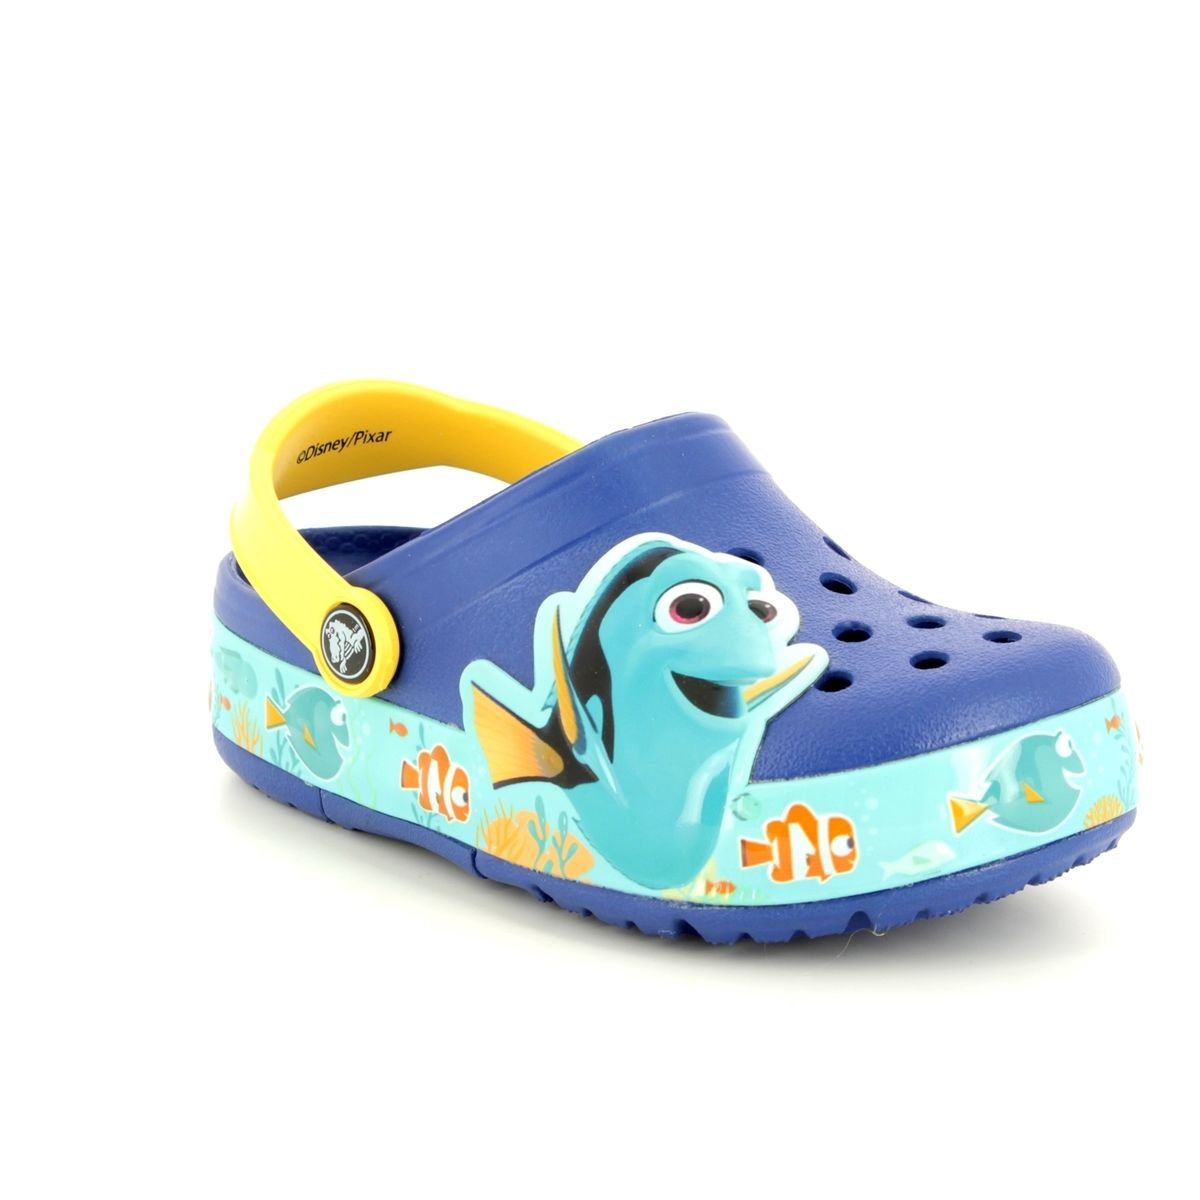 55eb1b5c3d31 Crocs Sandals - Navy multi - 202881 4AX FINDING DORY